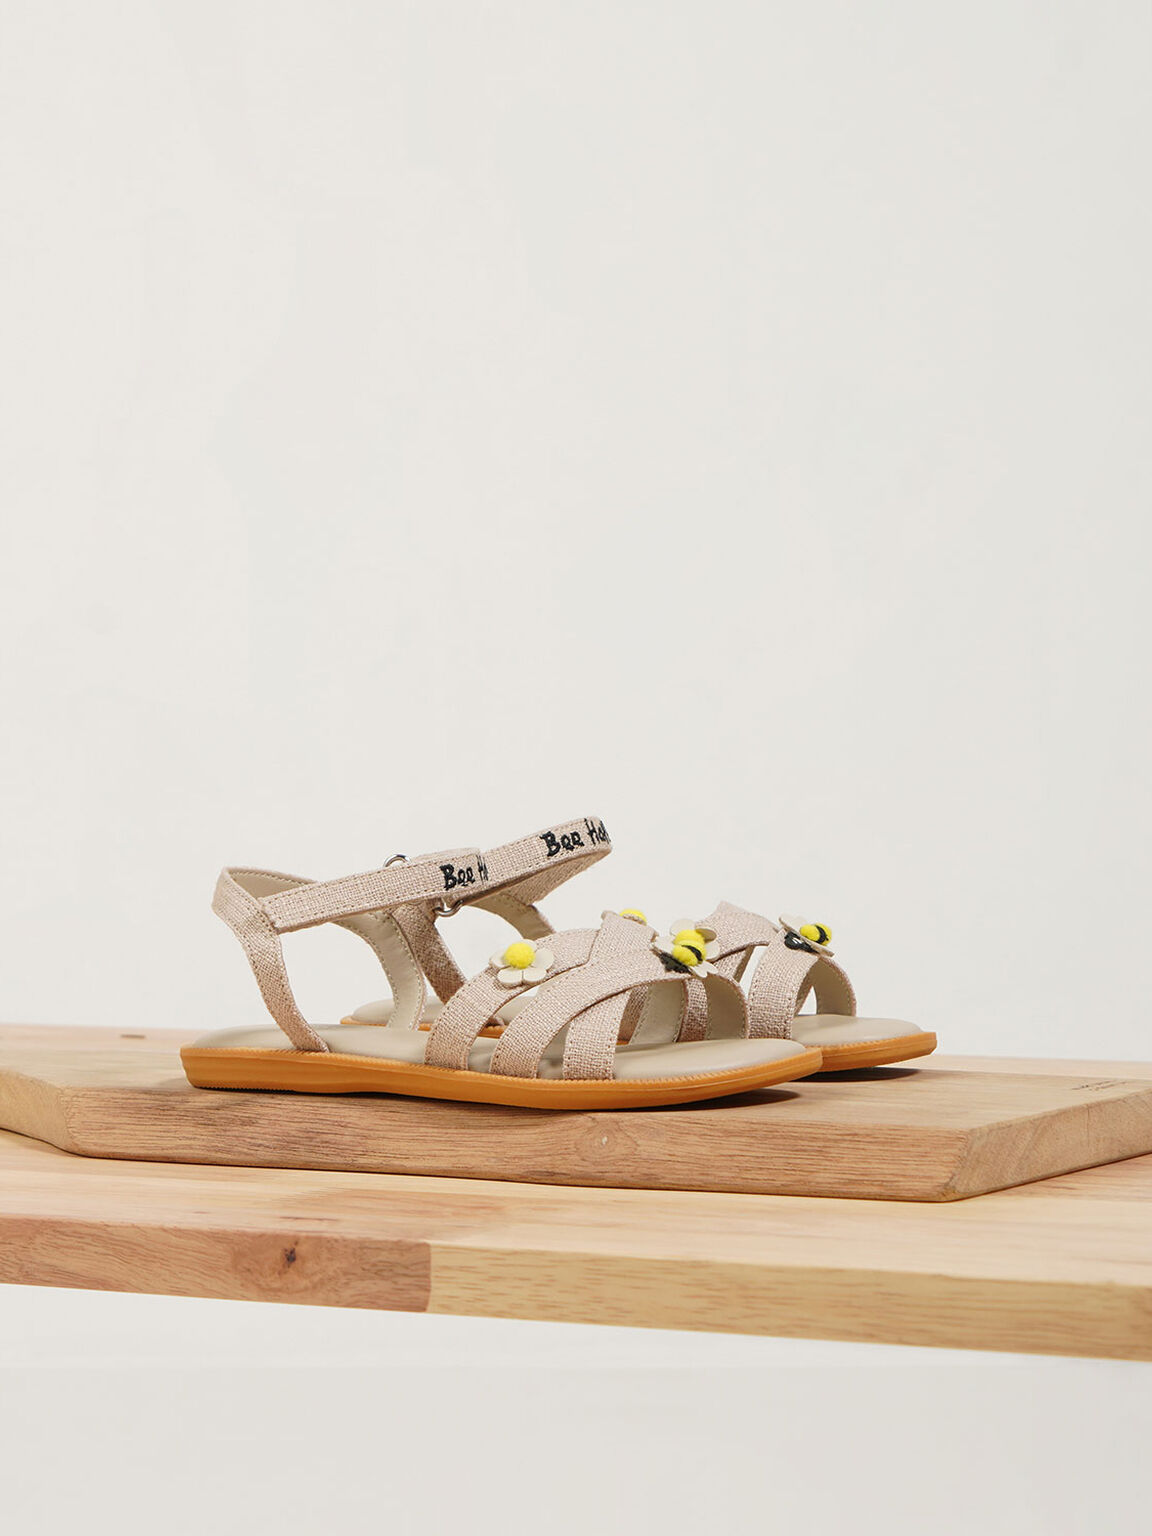 The Purpose Collection - Girls' Bee Flat Sandals, Beige, hi-res